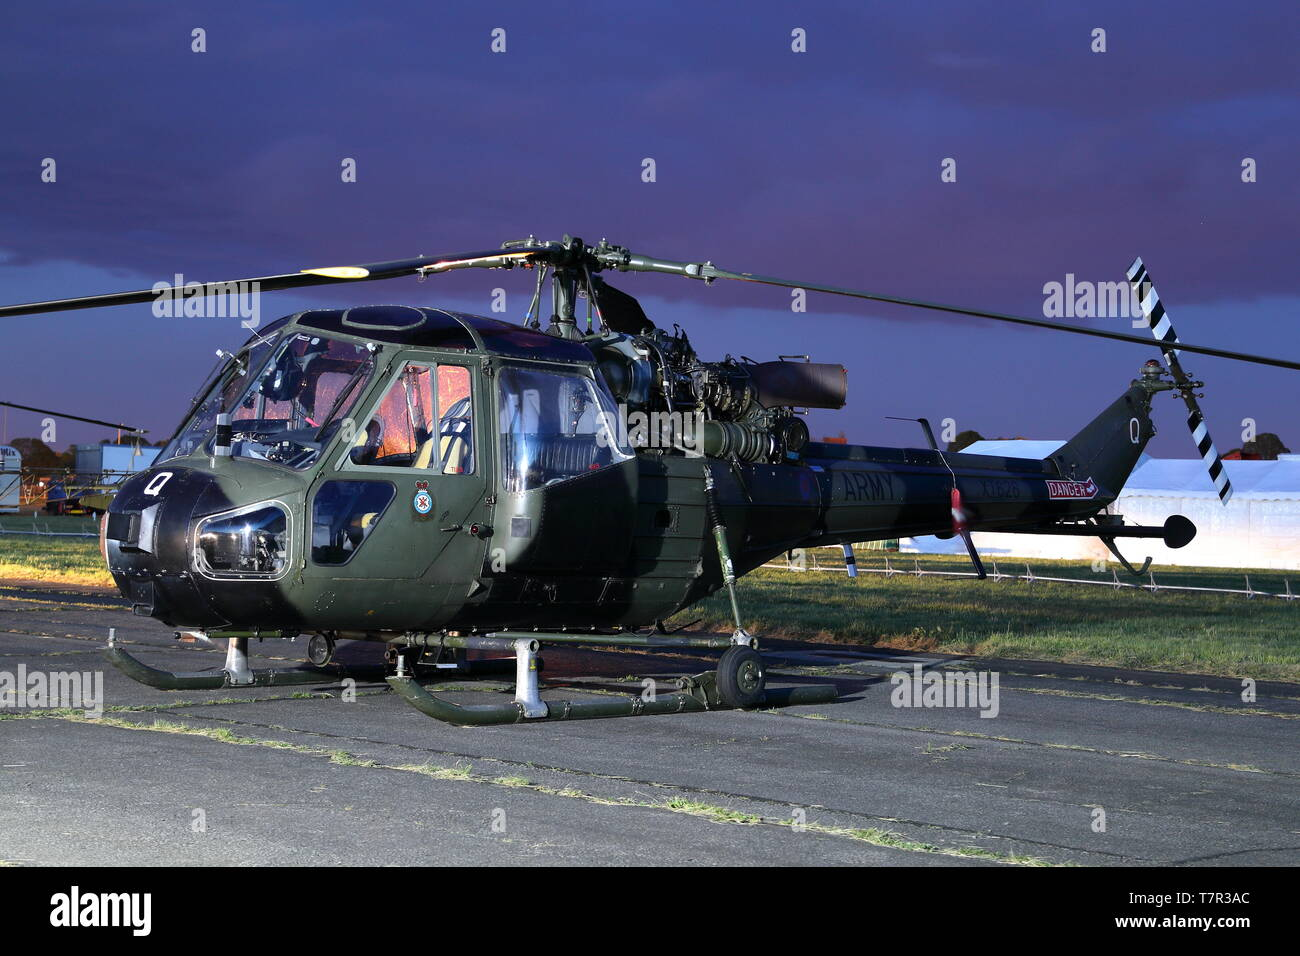 Westland Scout XT626 at the Abingdon Air & Country Show night shoot, Abingdon, UK - Stock Image